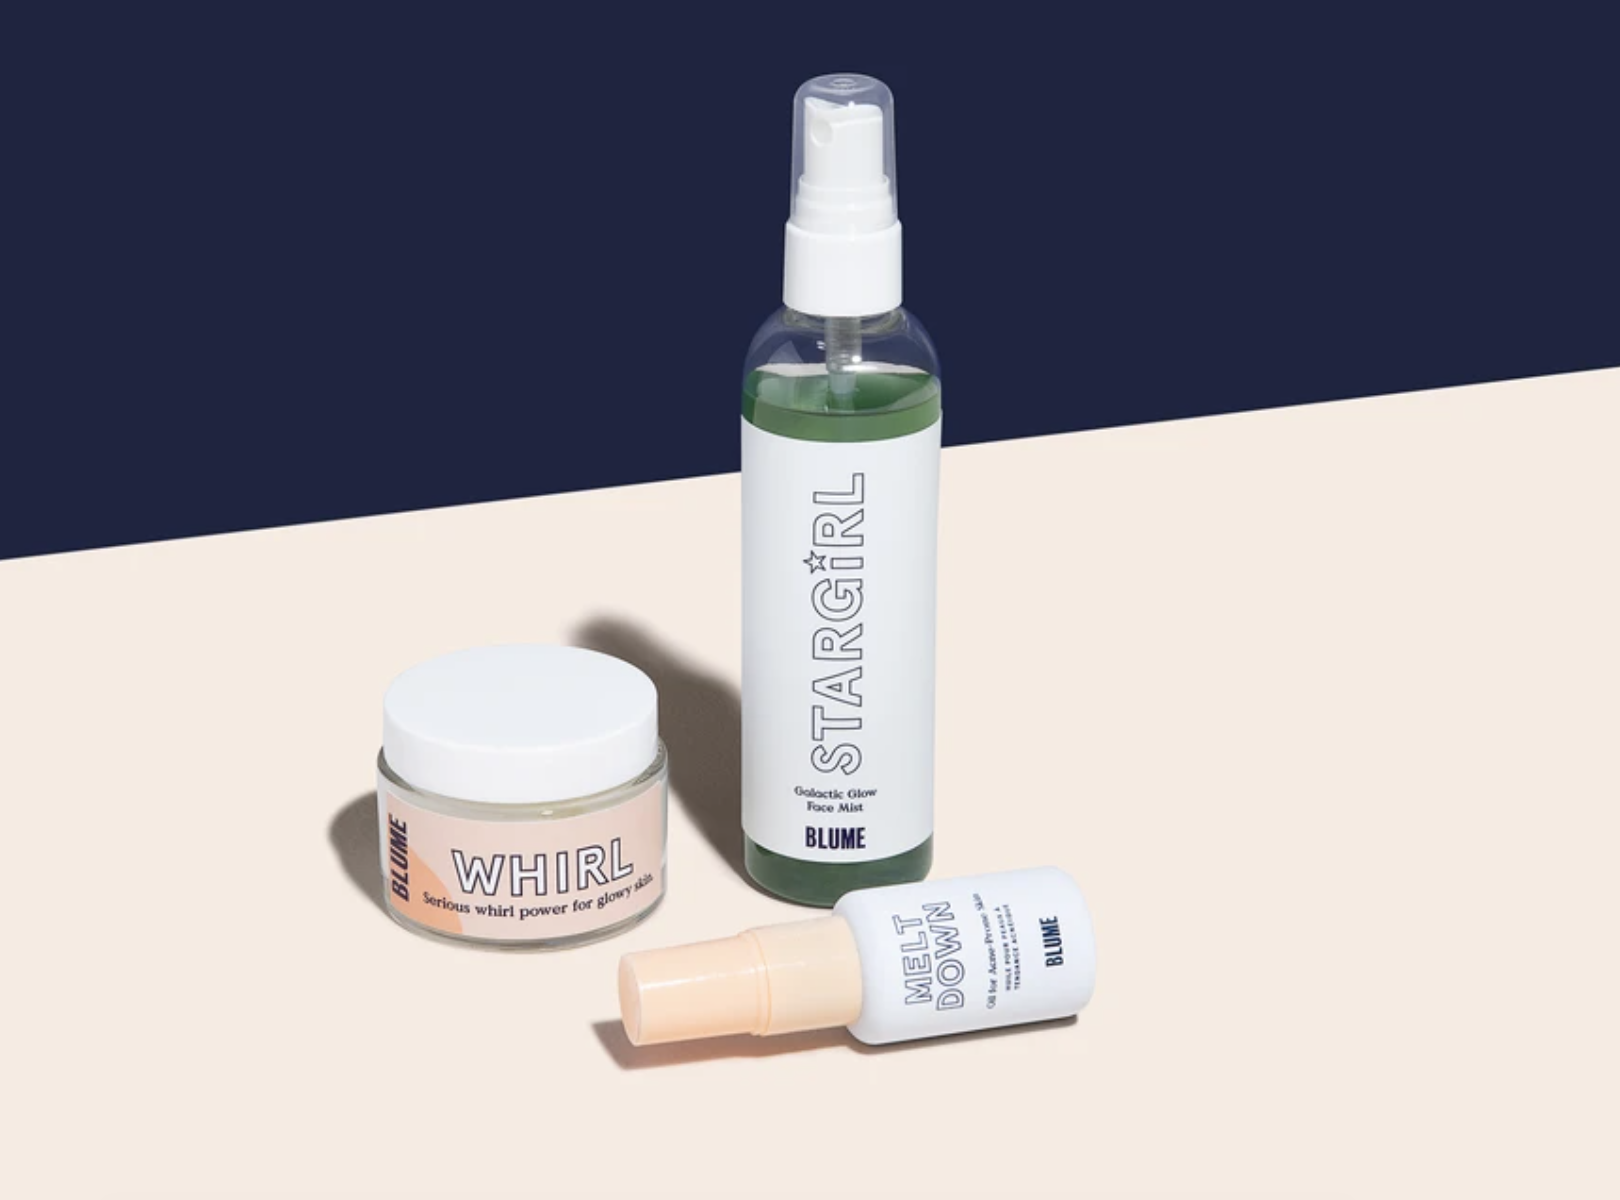 The set with Whirl Moisturizer, Meltdown Acne Oil, and Stargirl Face Mist